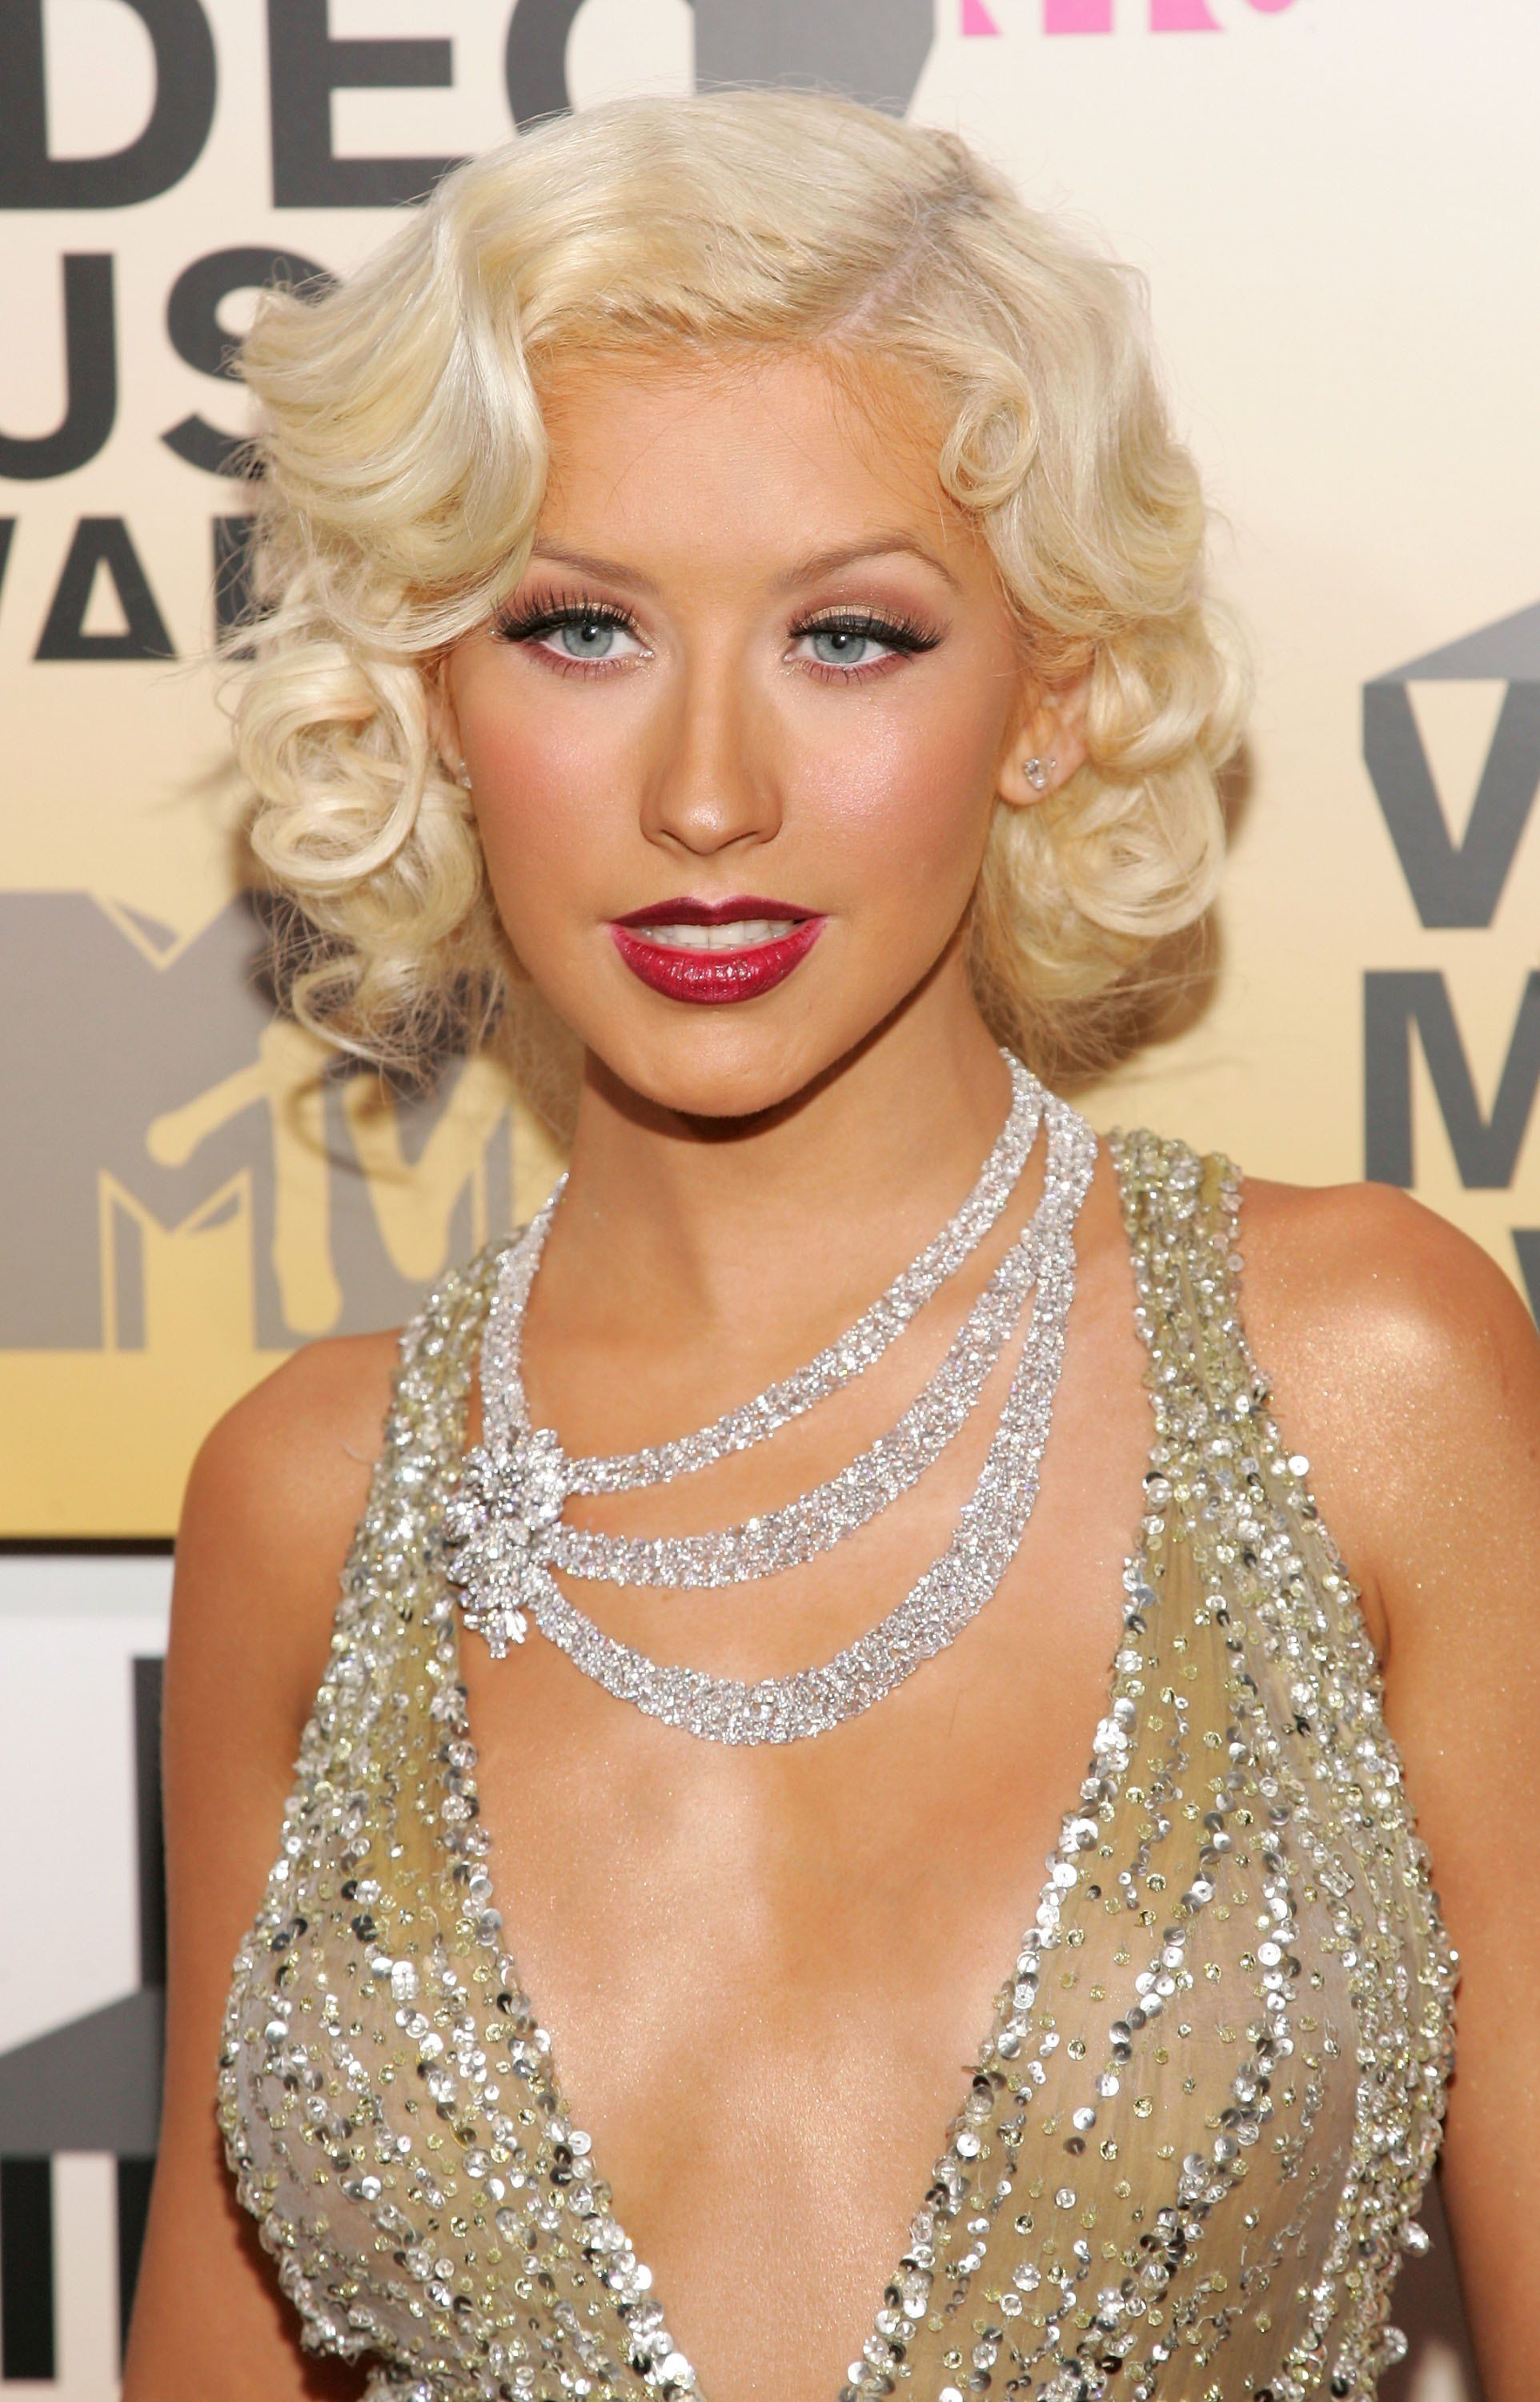 Christina Aguilera S 2006 Vma Look Was Flawless In 2019 Social